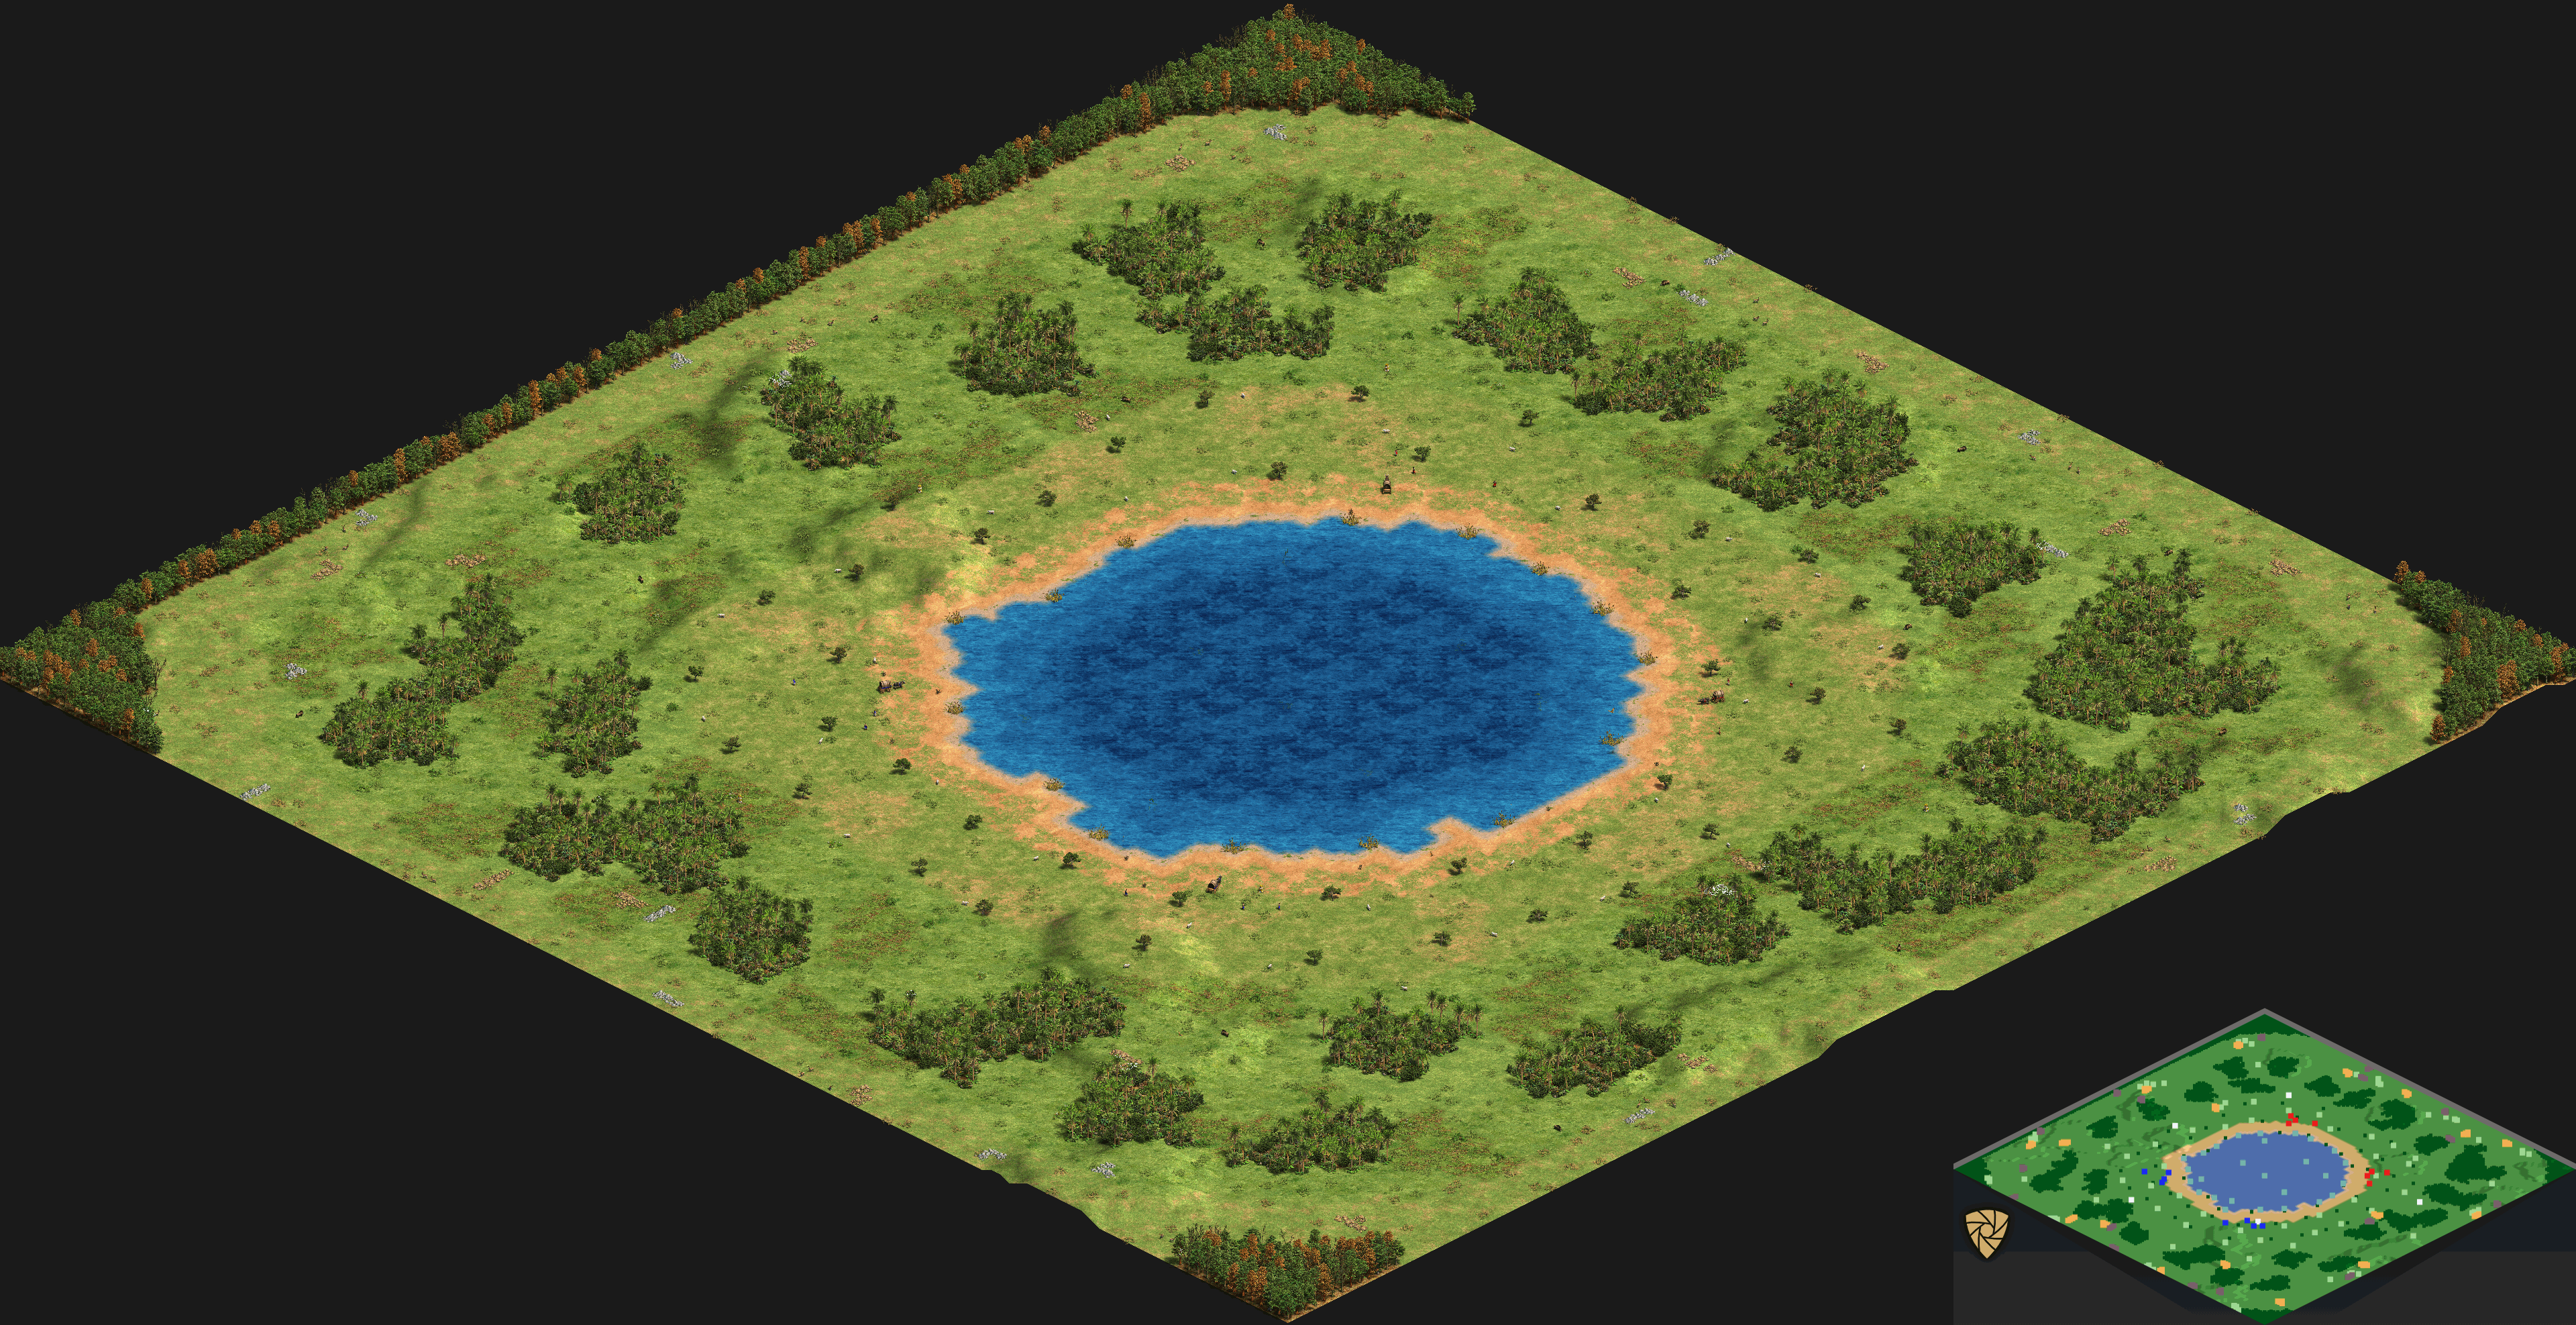 DC2_Double_Pond_Inspection.png